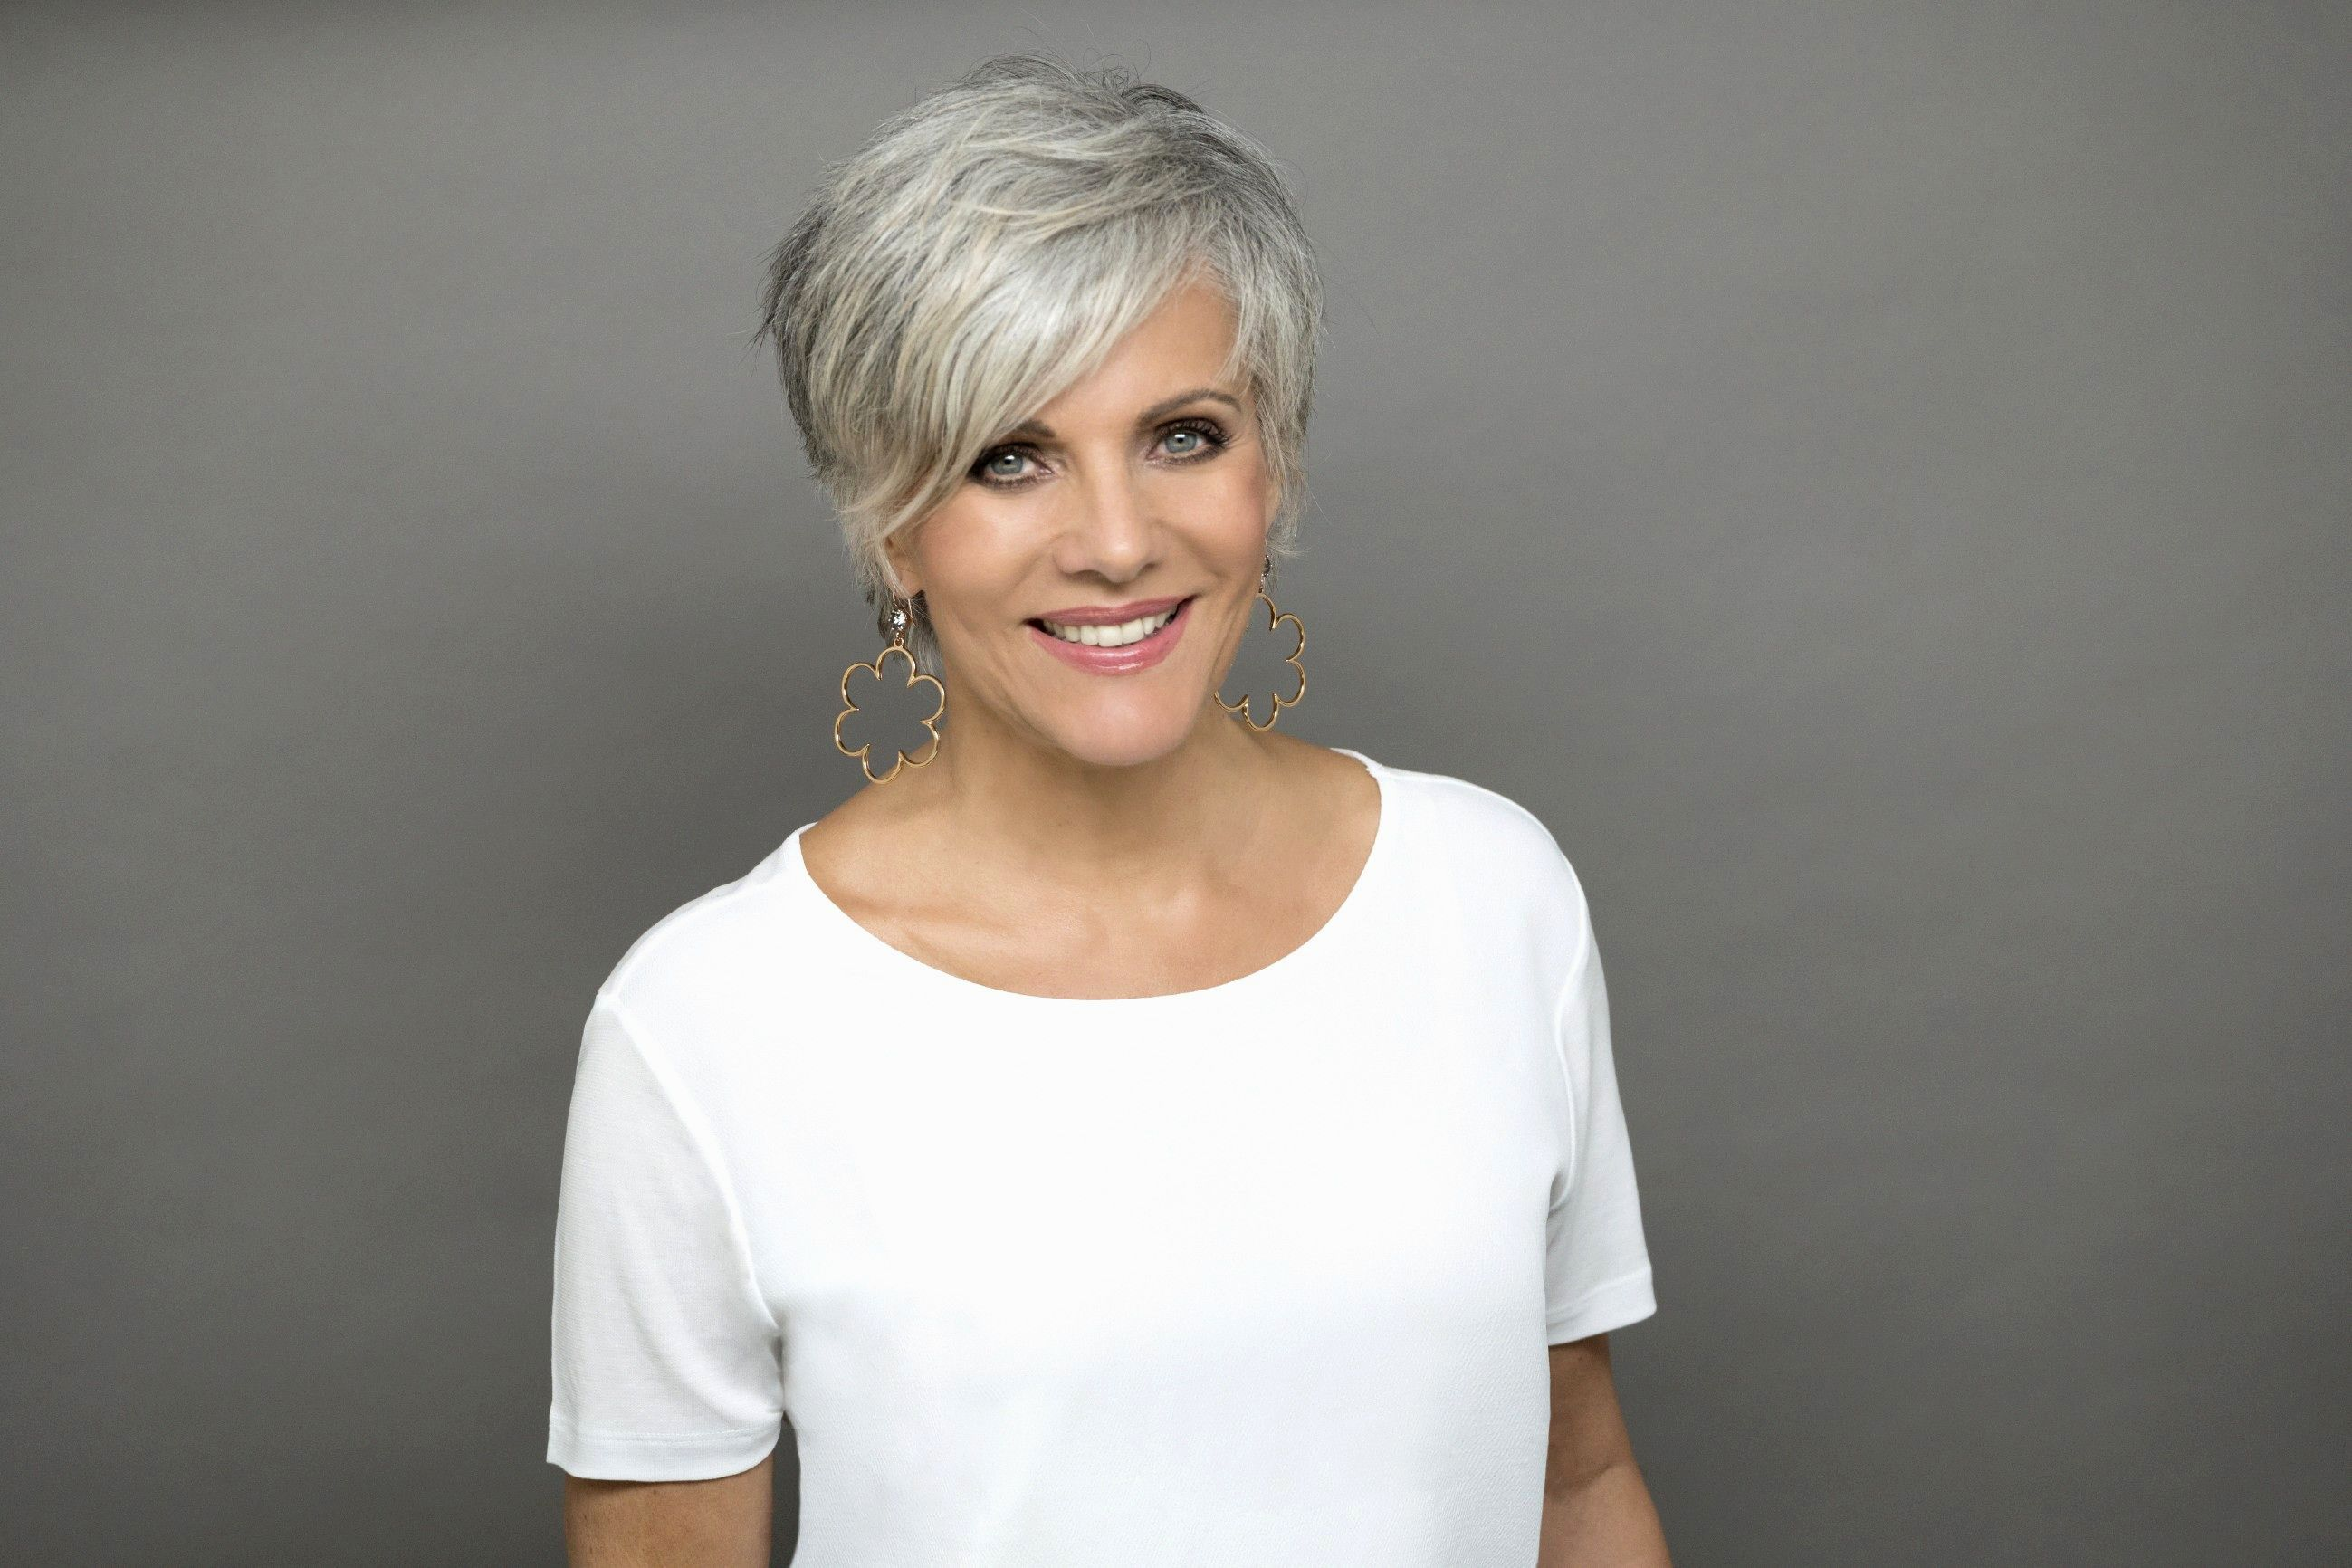 Inspirational Hairstyles Gray Hair Model-Finest Hairstyles Gray Hair Image